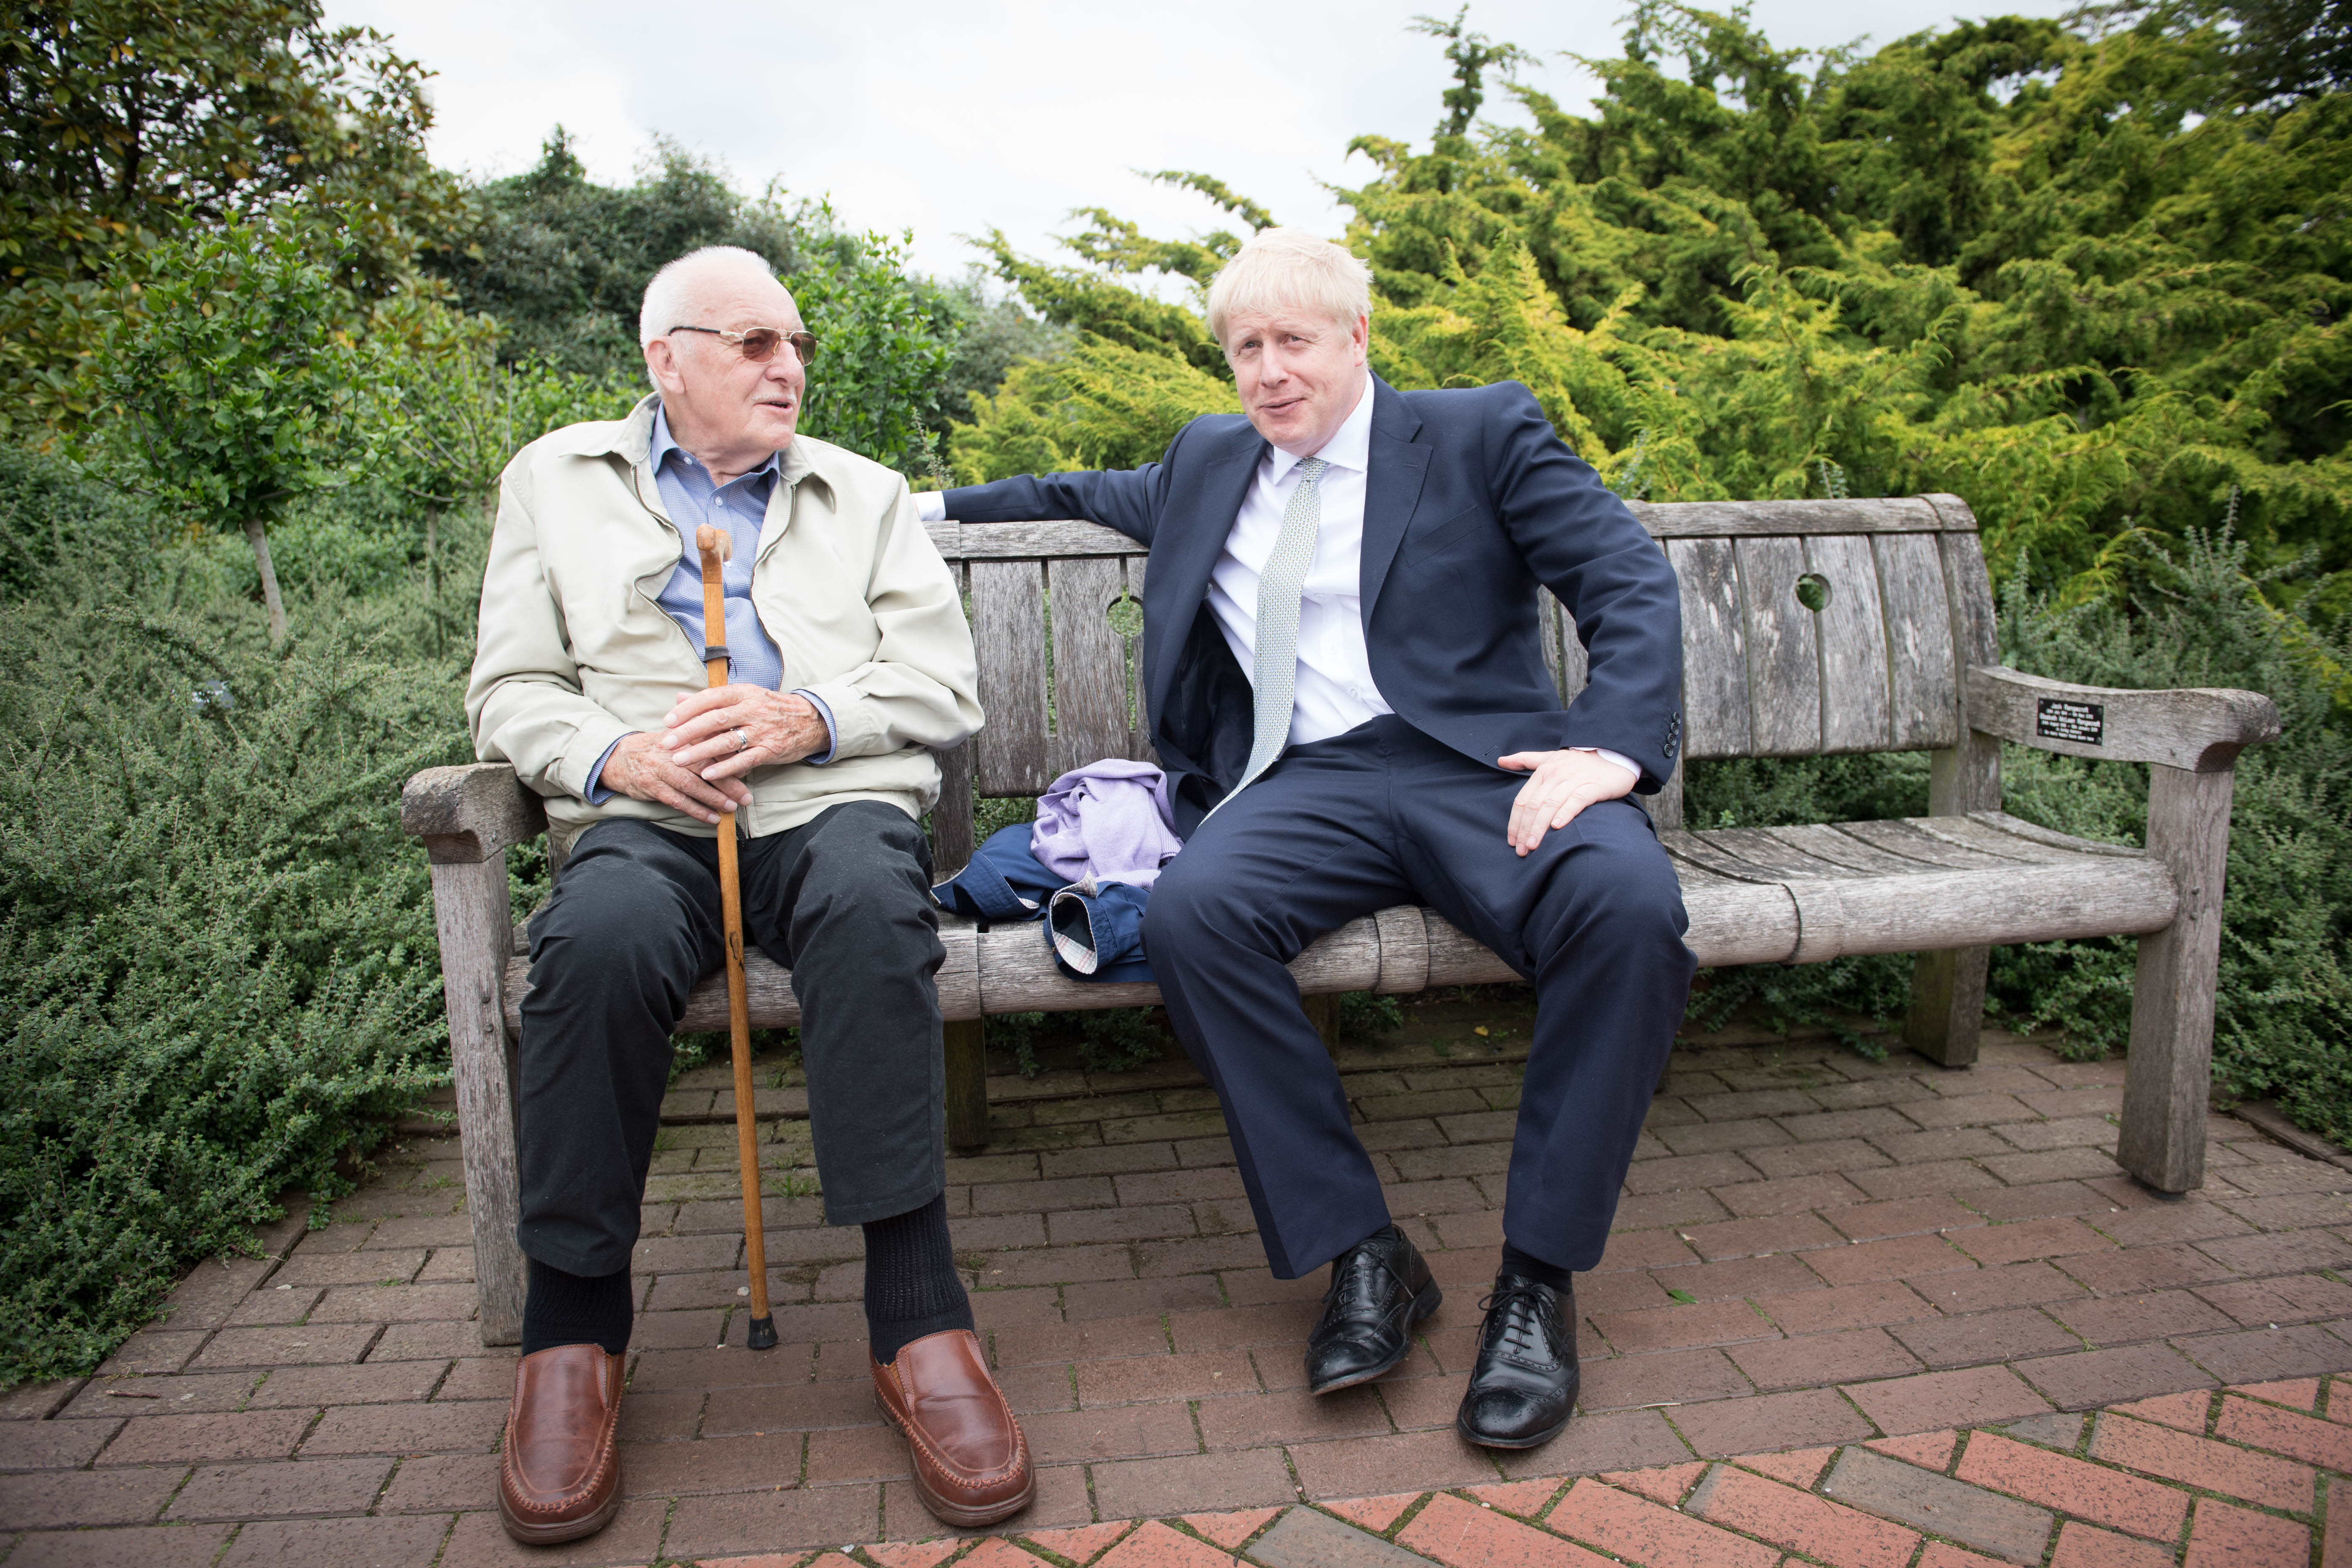 Conservative party leadership candidate Boris Johnson talks to a visitor as he tours the RHS (Royal Horticultural Society) garden at Wisley, in Surrey.